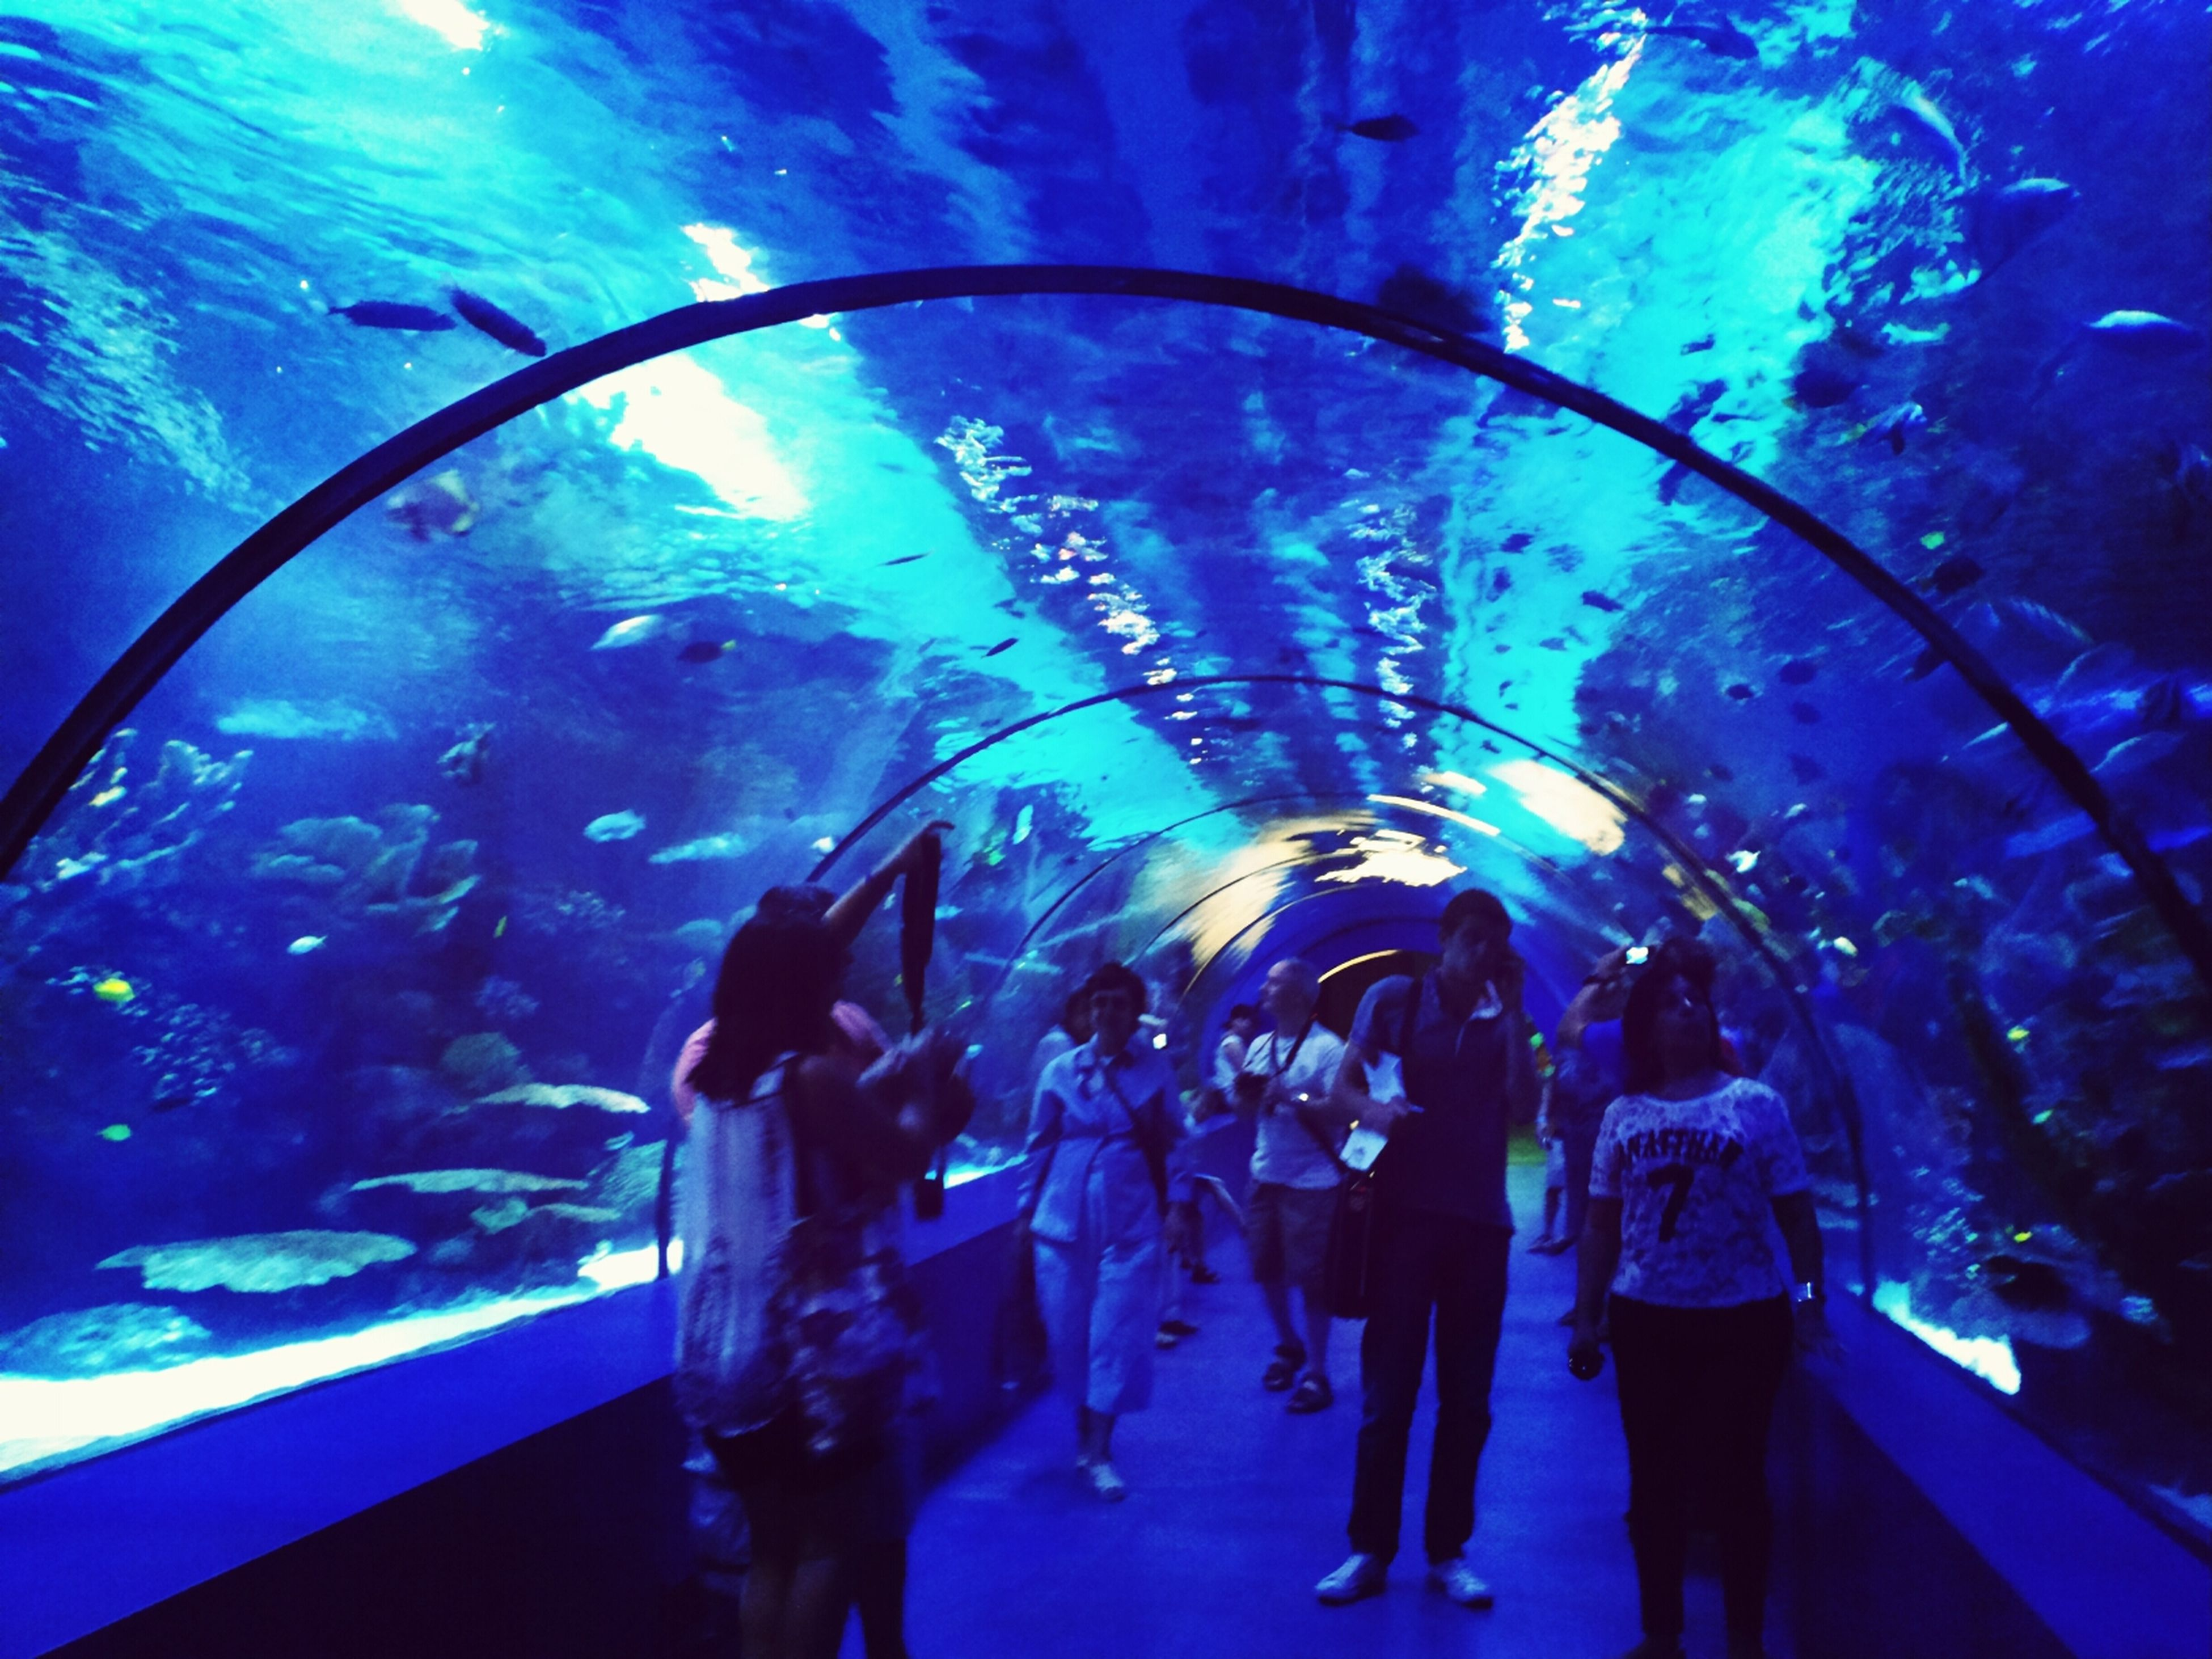 men, leisure activity, blue, lifestyles, water, underwater, large group of people, indoors, transparent, swimming, enjoyment, fish, person, fun, glass - material, arts culture and entertainment, togetherness, medium group of people, sea life